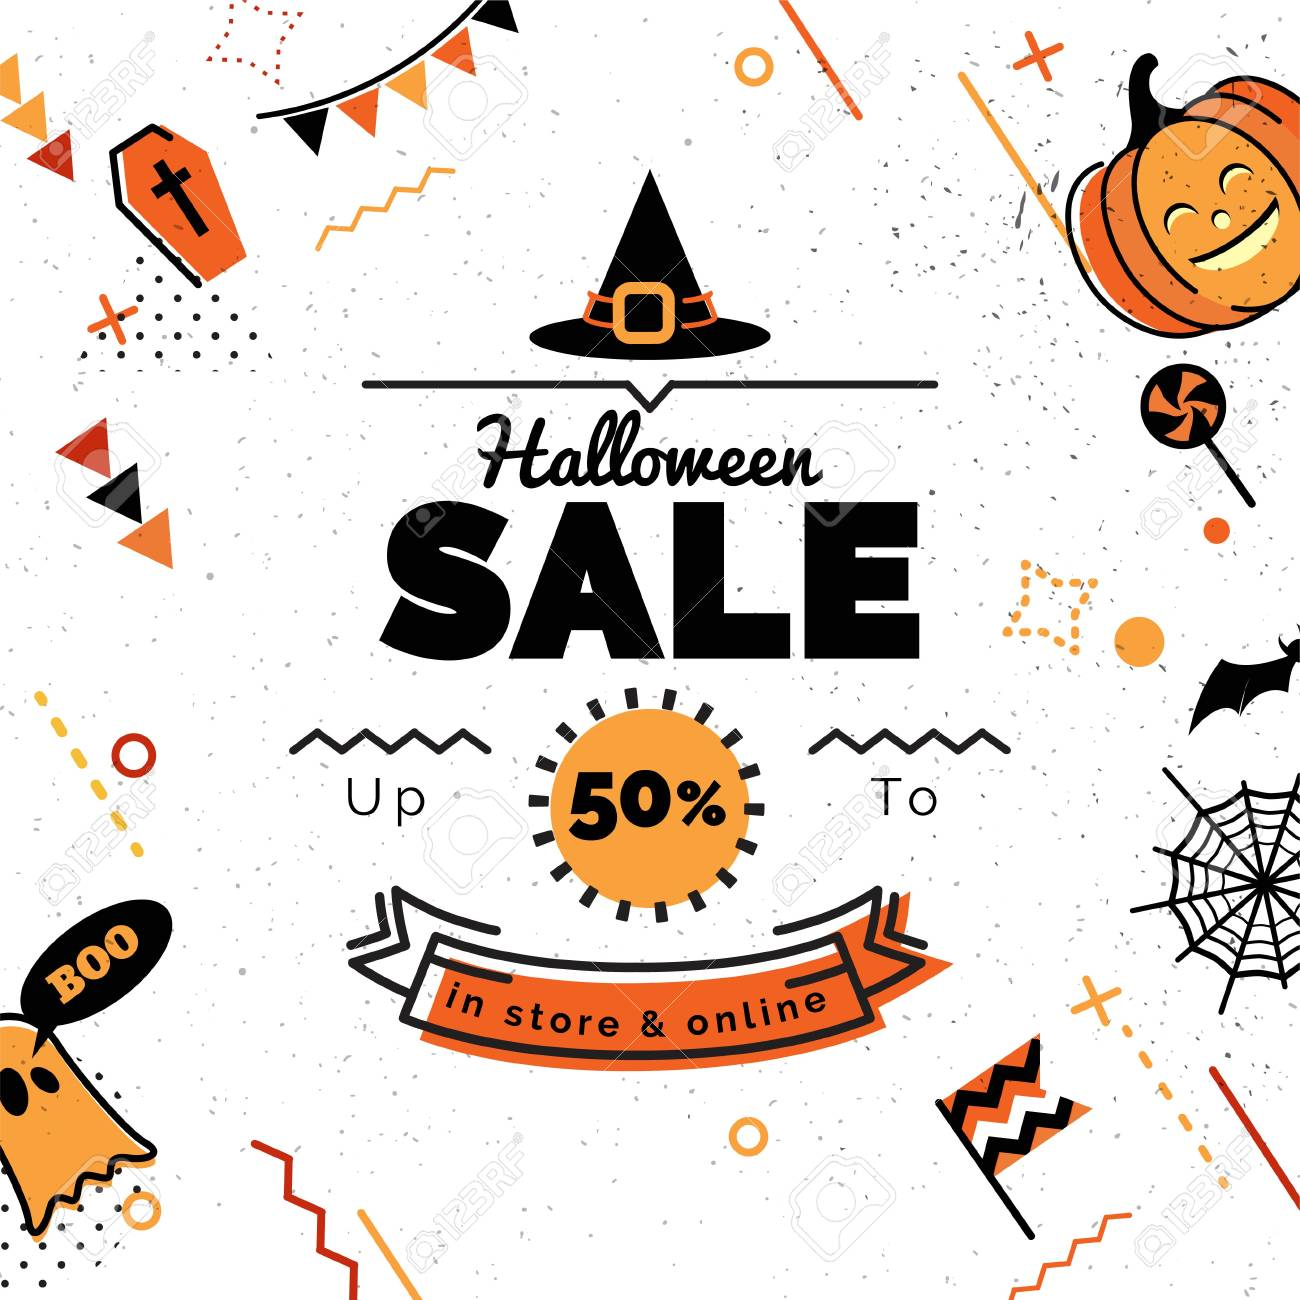 Halloween Sale Banner Sale Vector Illustration. Sale Background In 80s  Memphis Style With Holiday Symbols